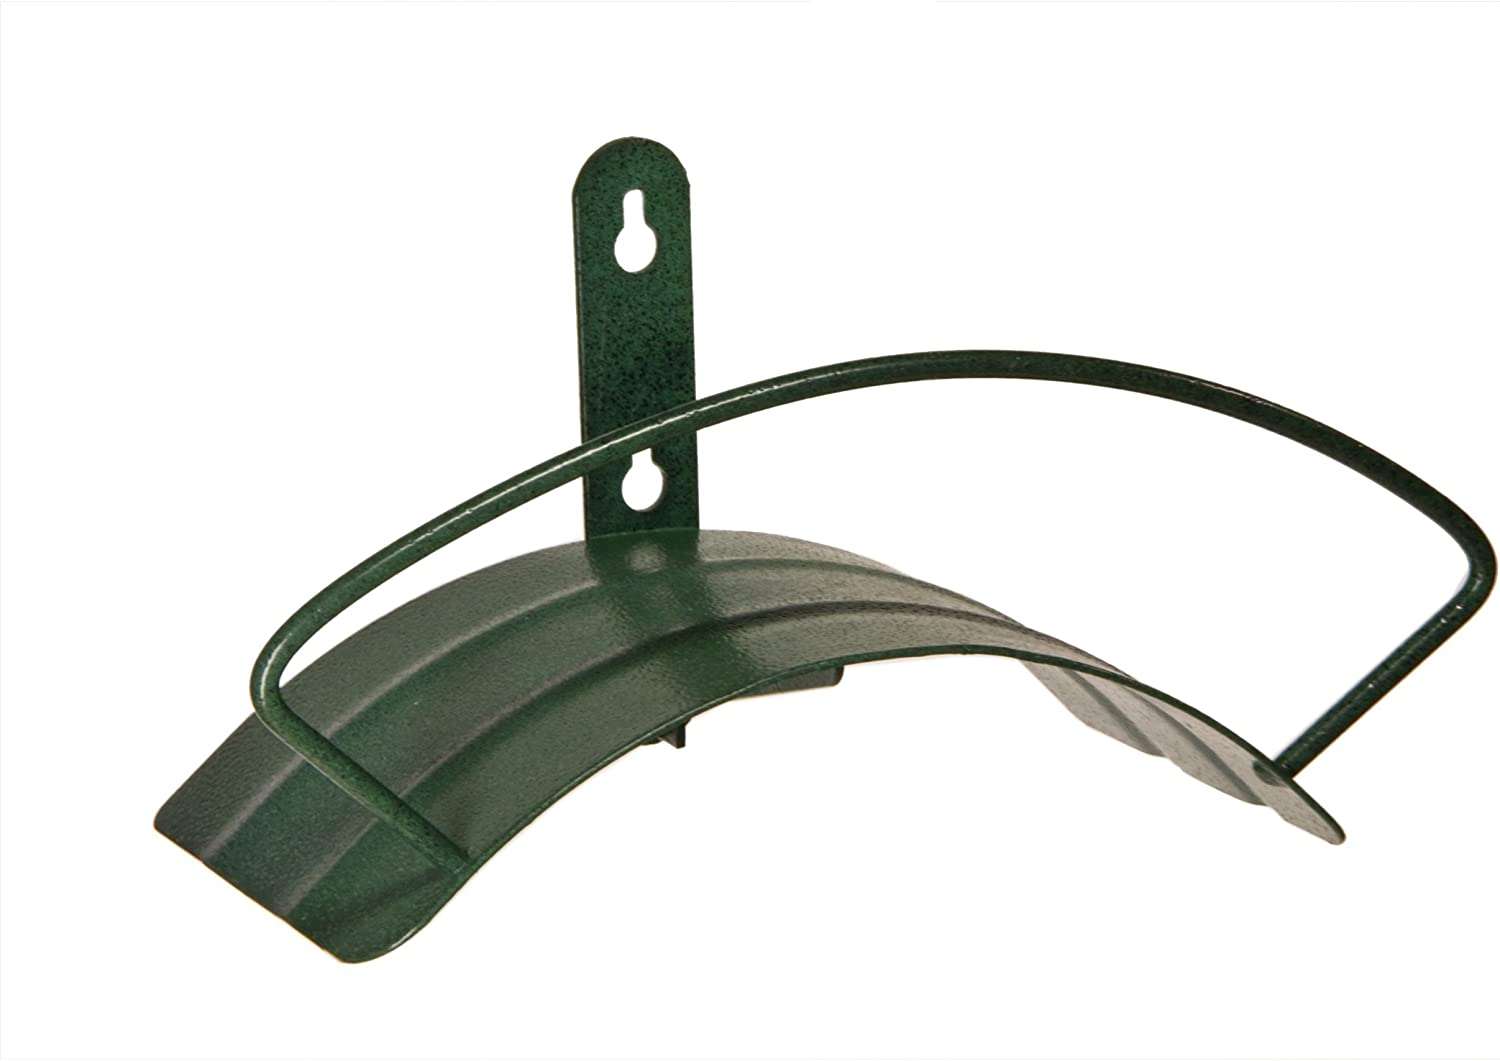 Yard Butler Deluxe Heavy Duty Wall Mount Hose Hanger Easily Holds 100' Of 5/8' Hose Solid Steel Extra Bracing And Patented Design In NEW COLORS and DECORATIVE DESIGNS IHCWM-1 Textured Forest Green : Garden Hose Parts : Garden & Outdoor